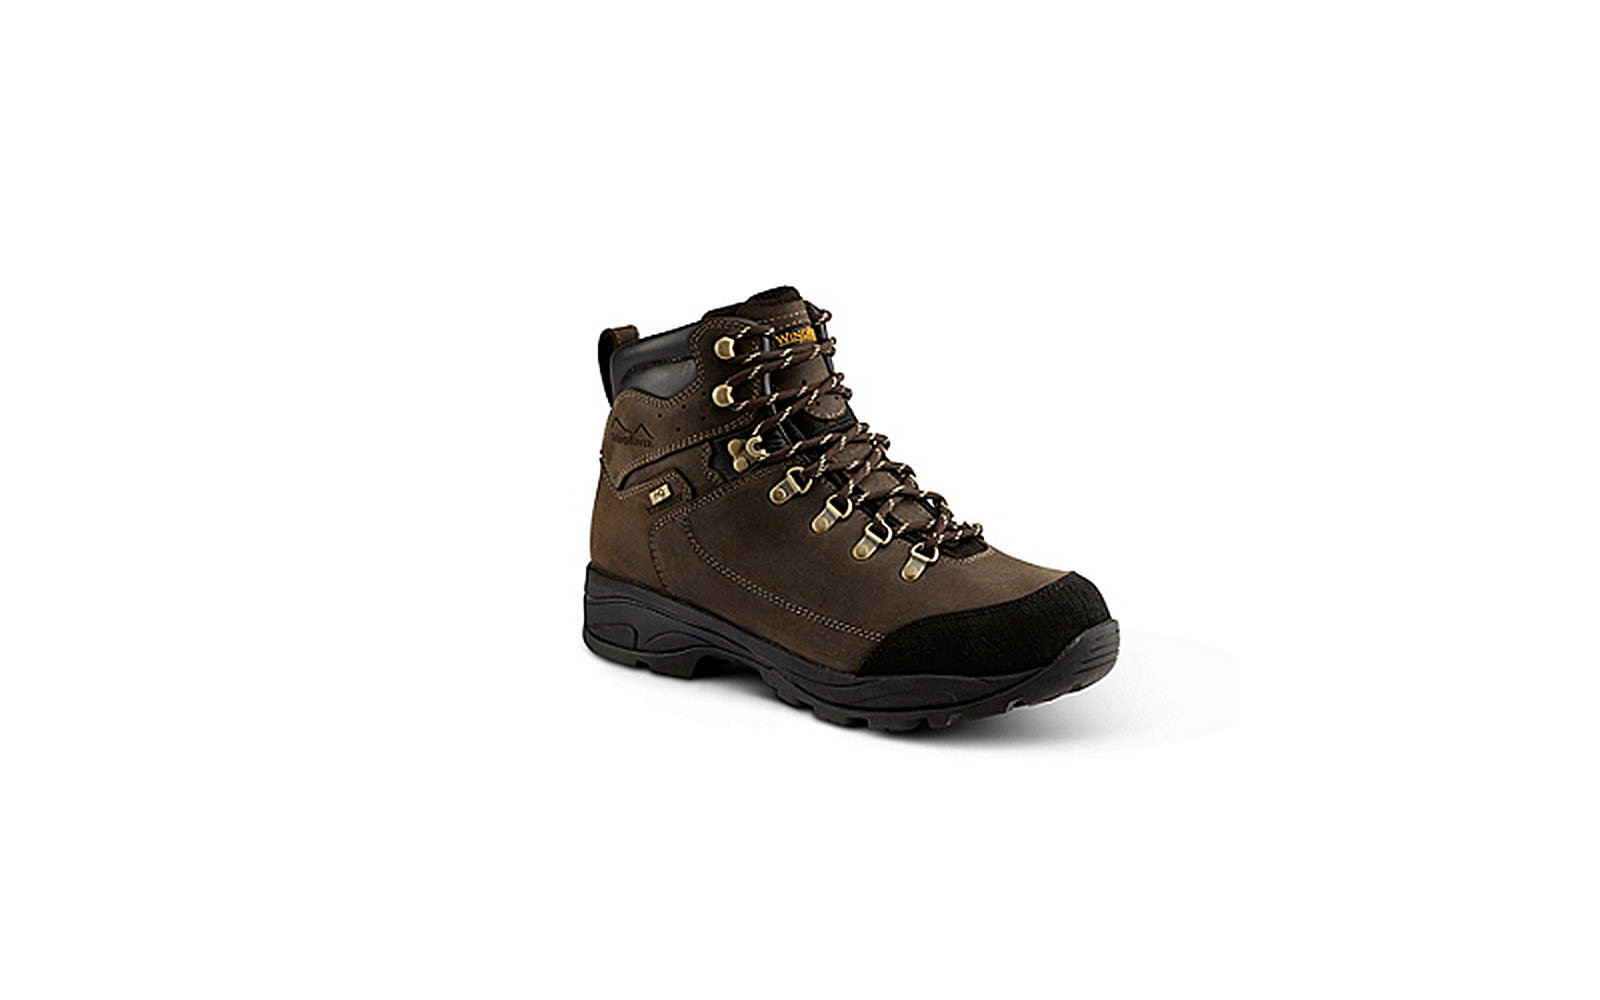 WindRiver Men's Yoho Hiking Boot